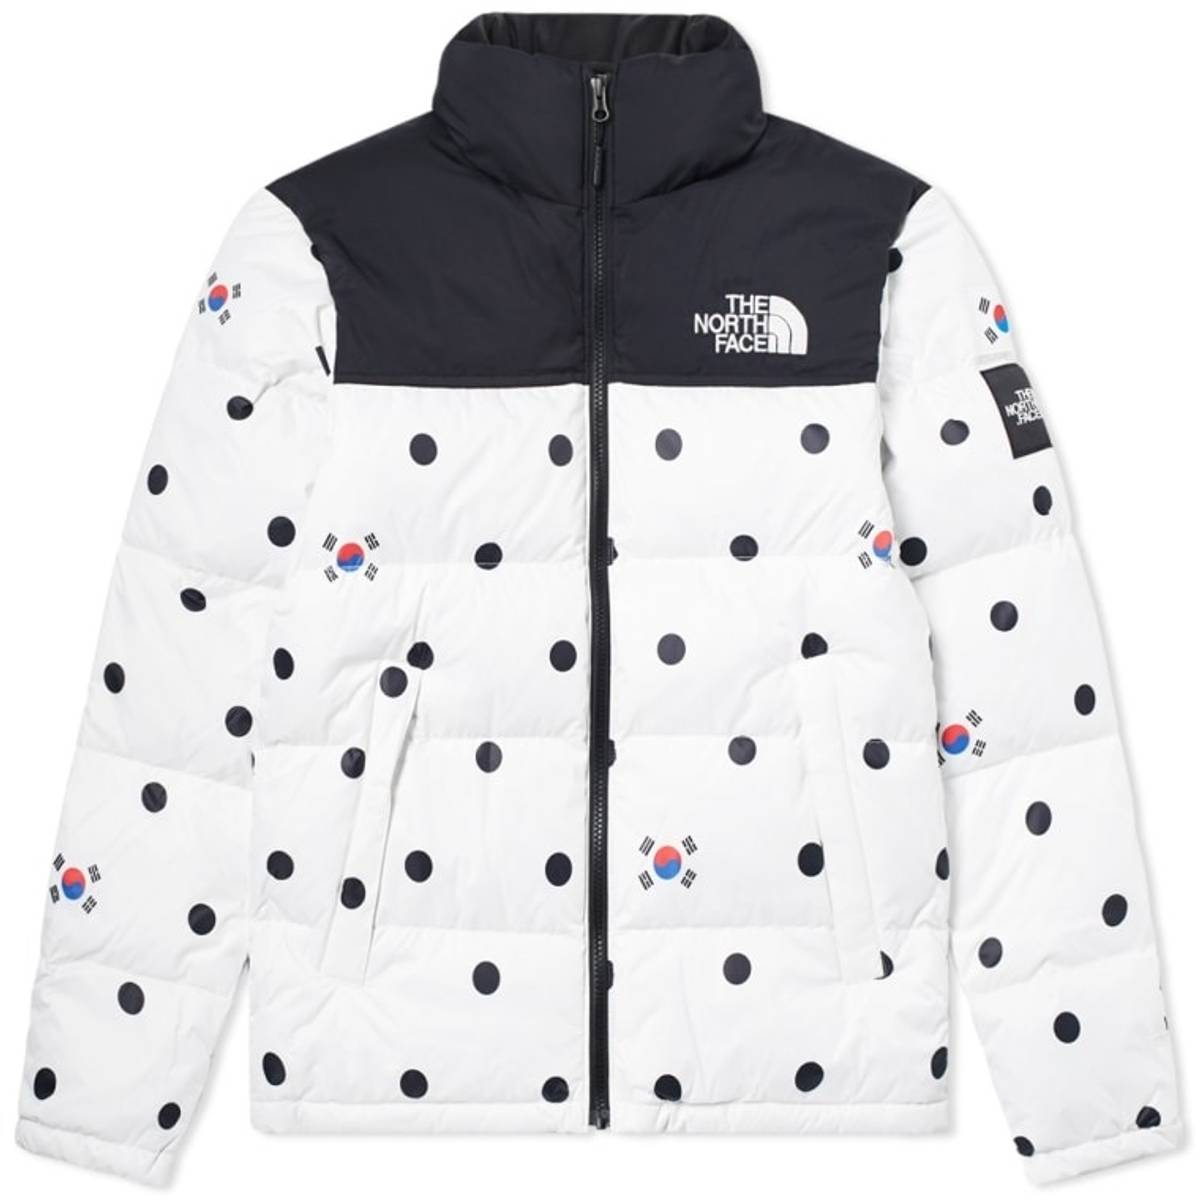 The North Face The North Face IC Nuptse Jacket South Korea Size l ... 472dc4312